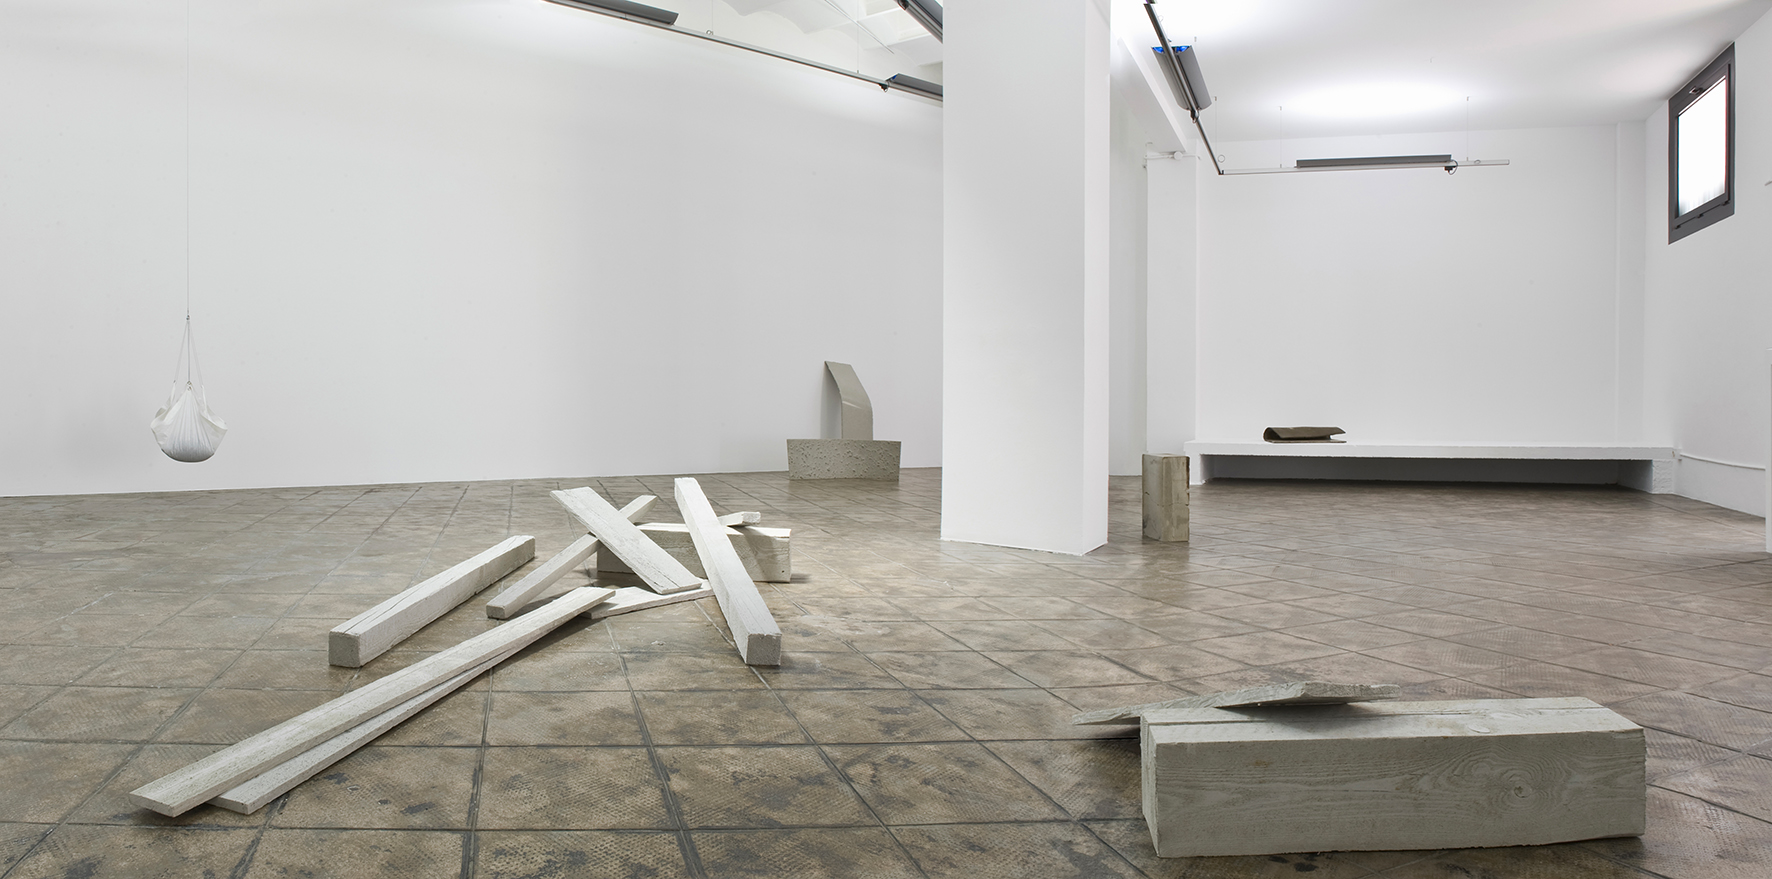 Installation view: 10, 25, 80, ProjecteSD, Barcelona, 2012 |  | ProjecteSD